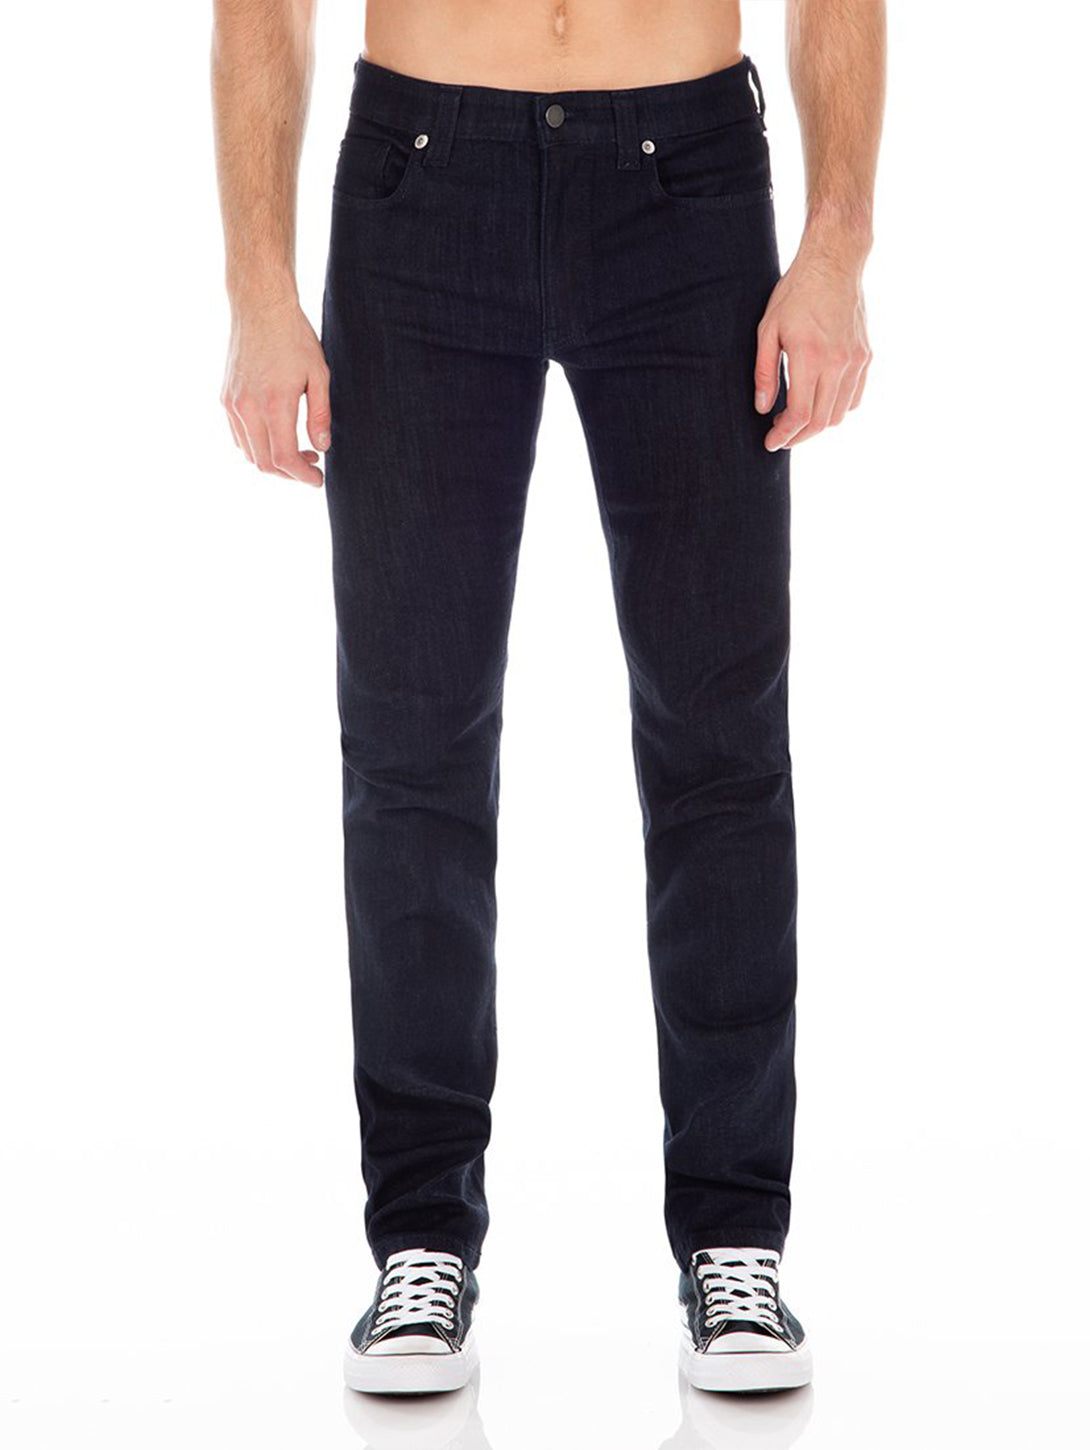 Indie Athletic Skinny Jean - Westgate-Fidelity Denim-Over the Rainbow